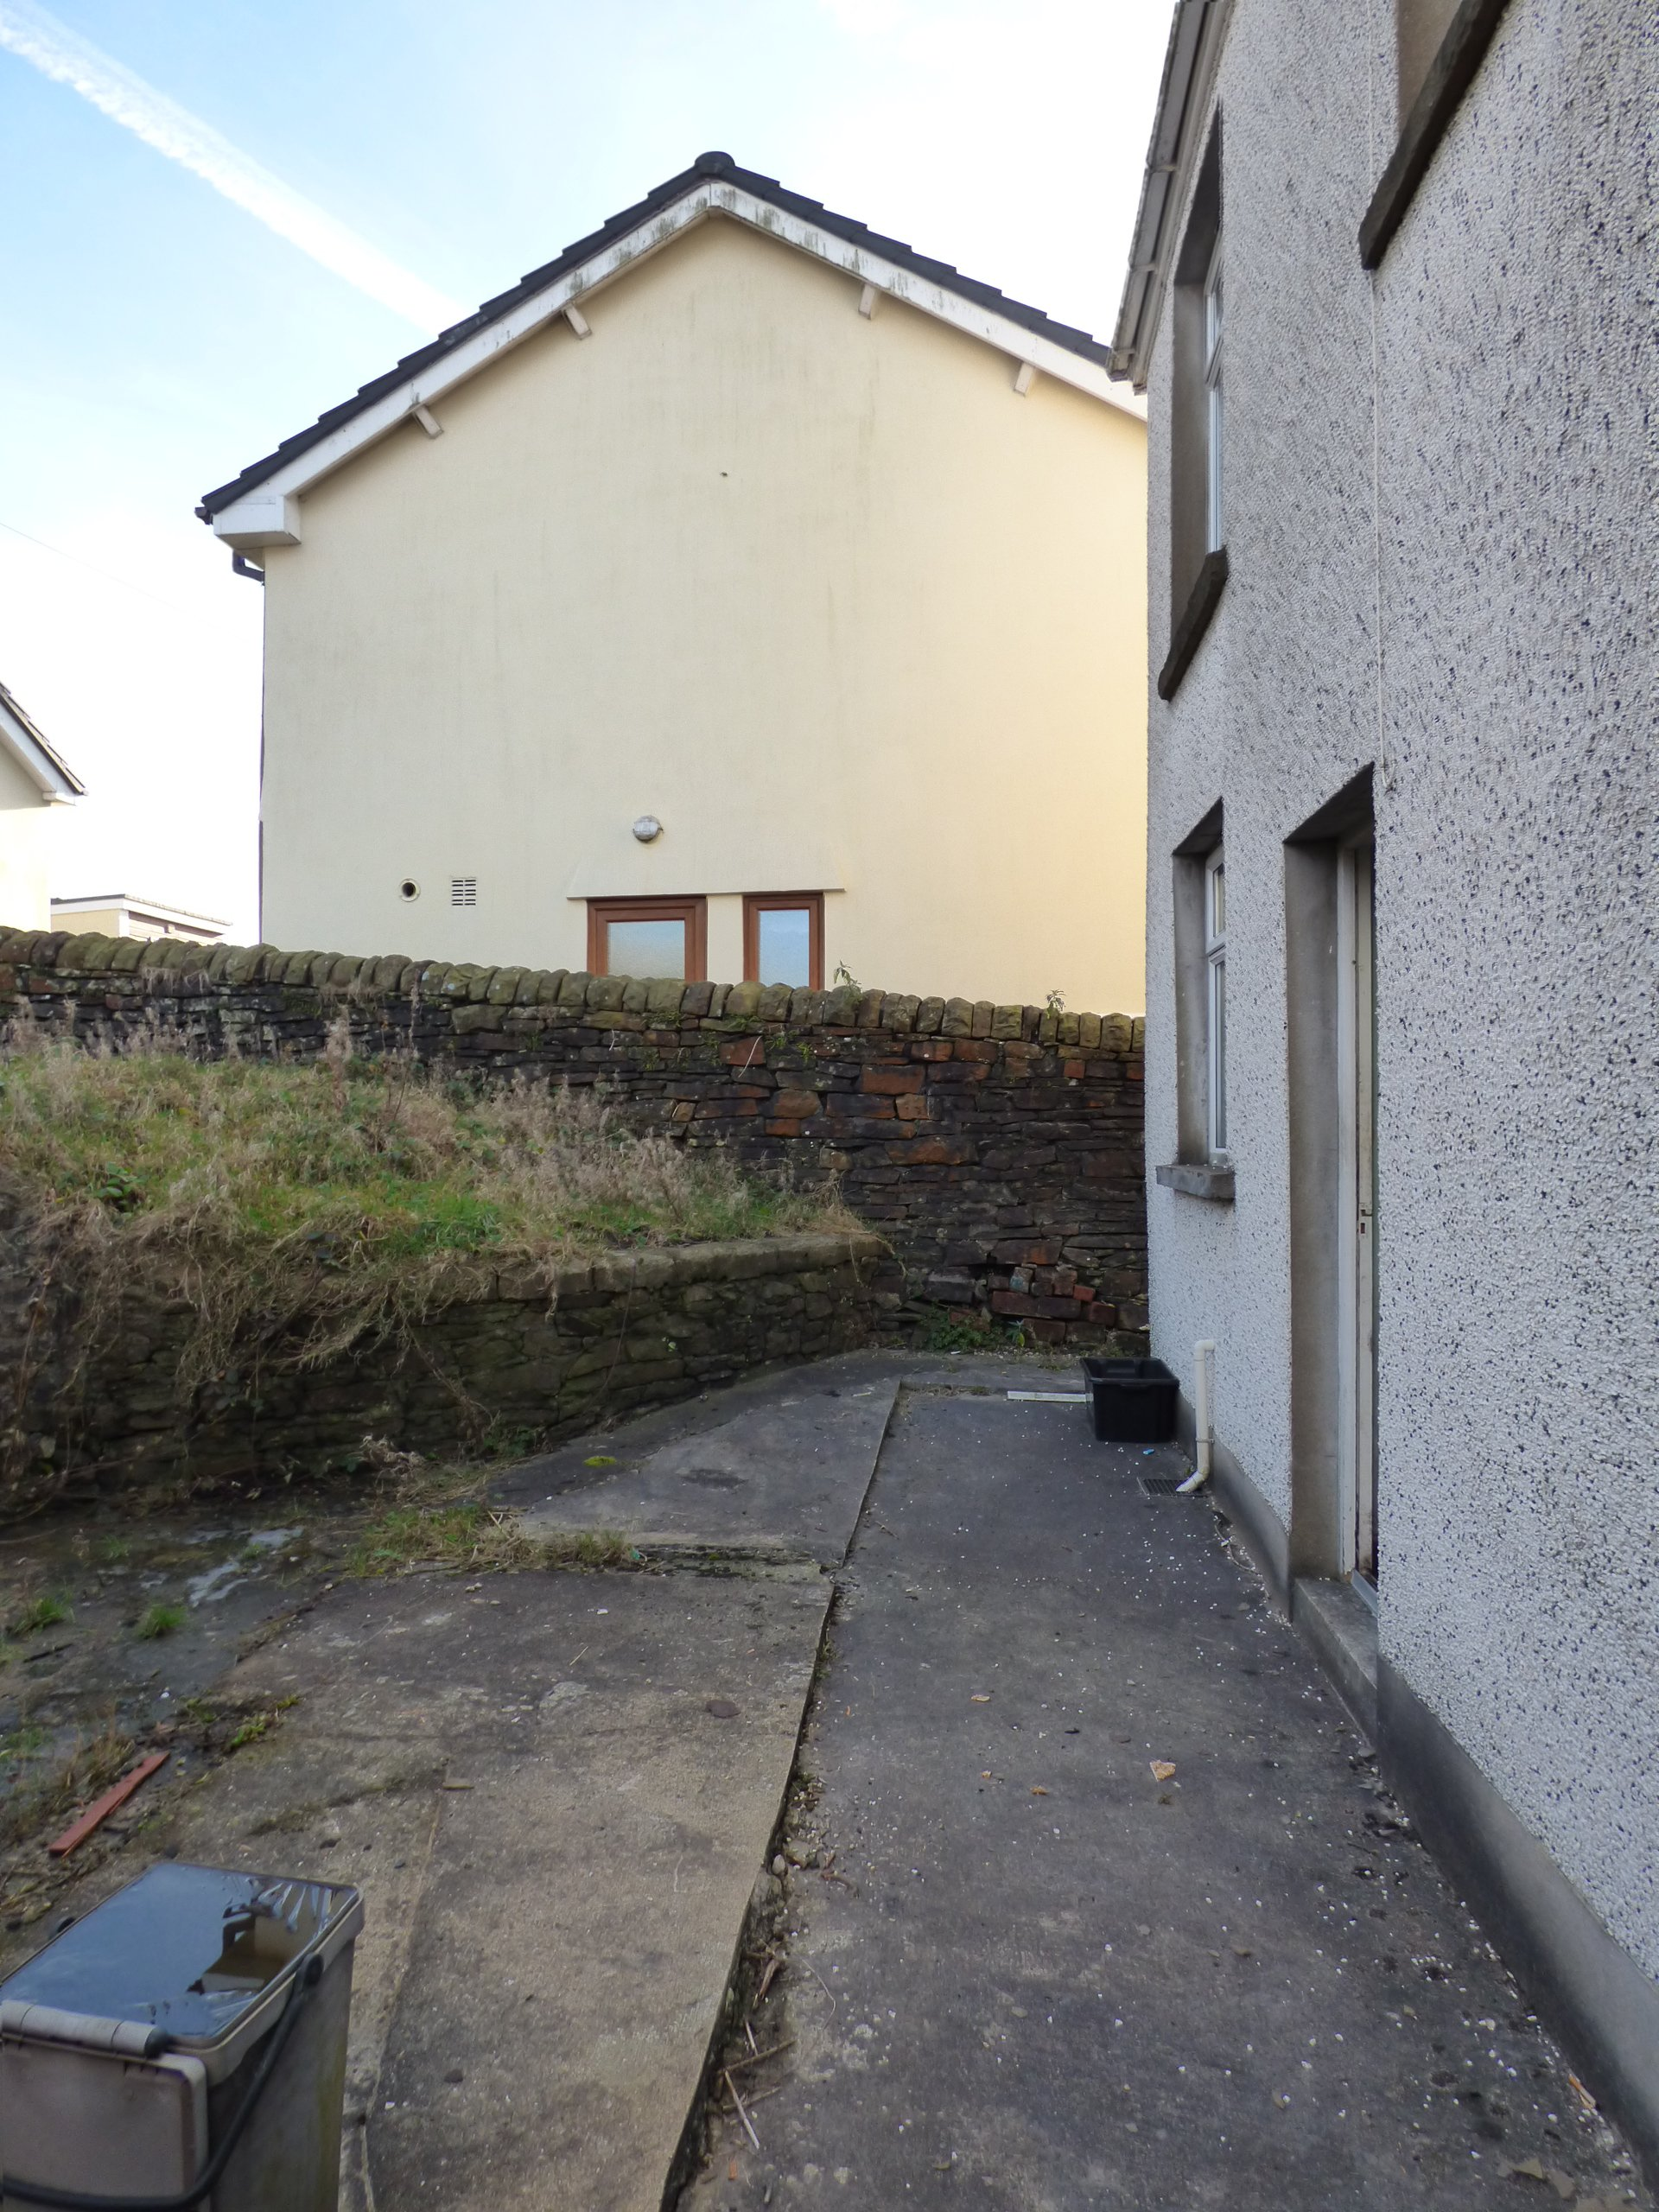 Wisemove Property for sale. Tanybryn House, Pontycymmer. Rear of property